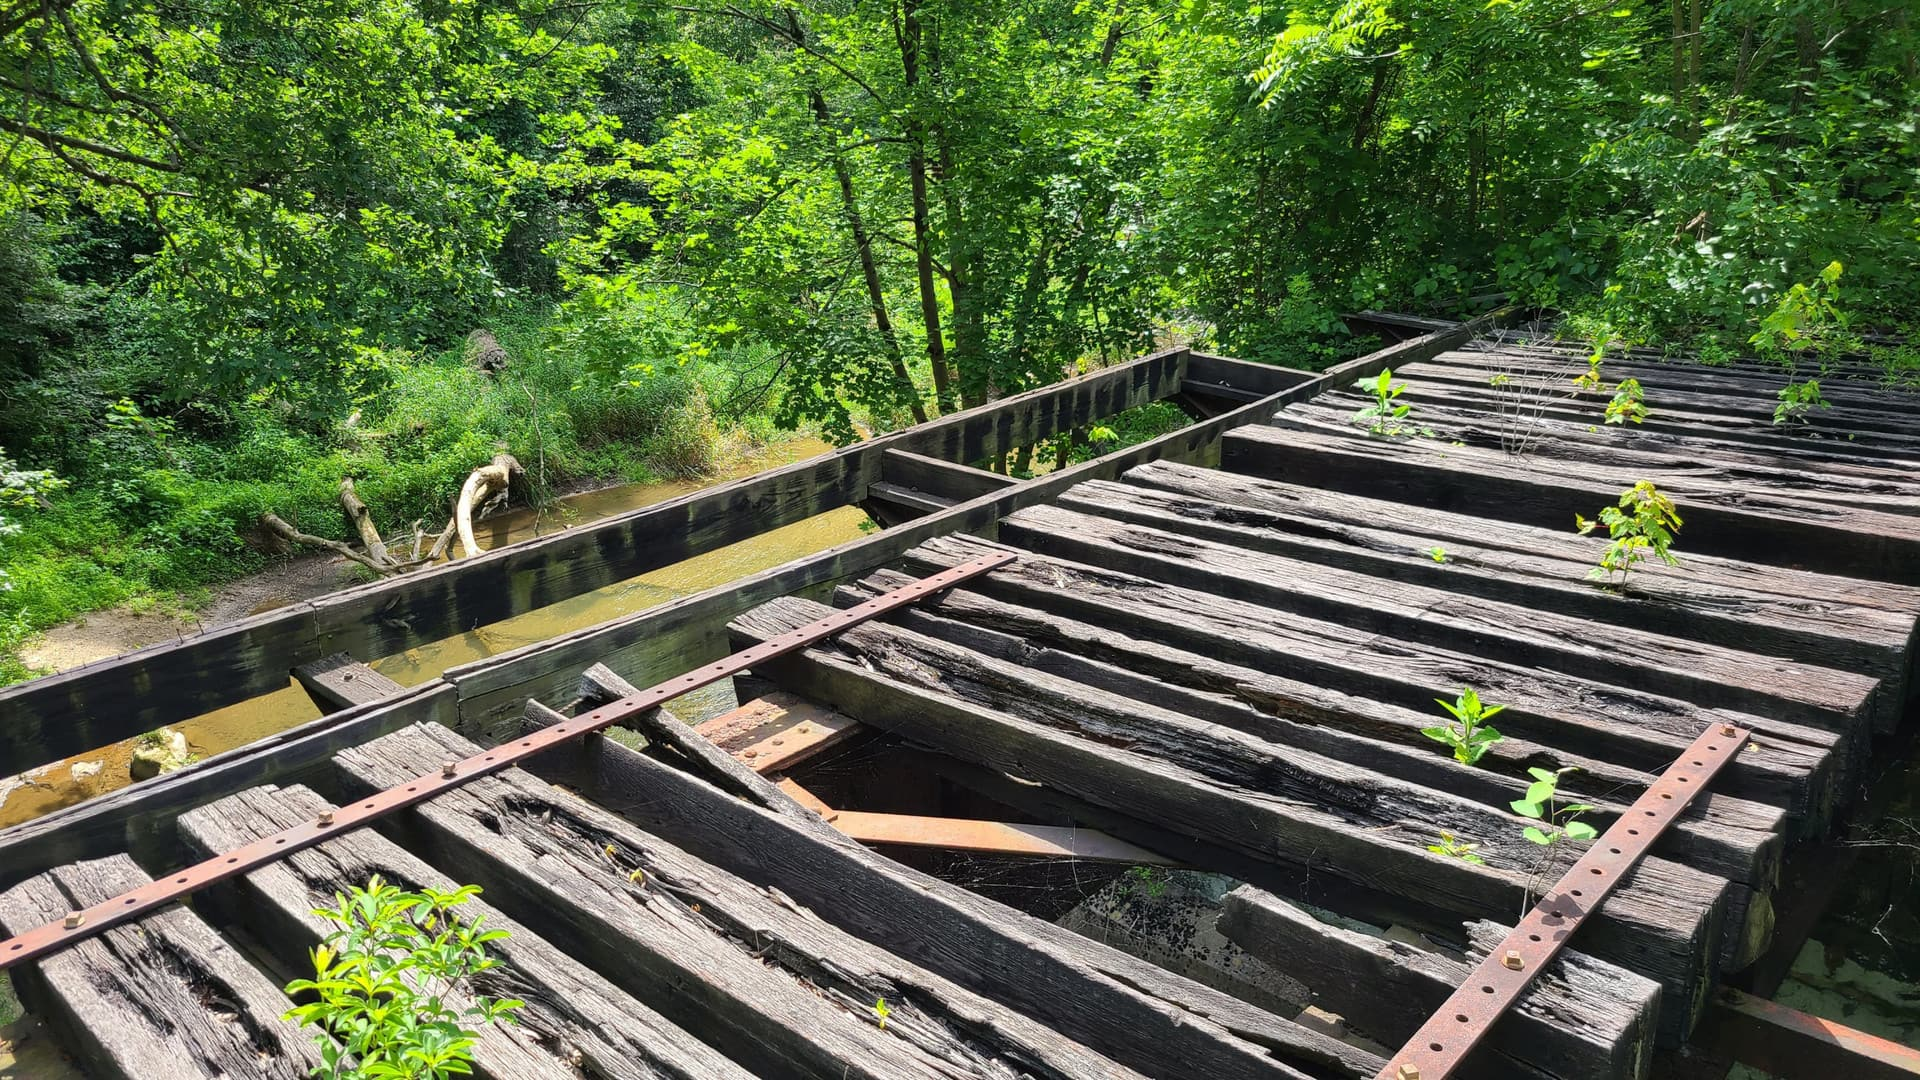 Rotting railroad ties sit on top of an old, disused rail bridge next to the trail